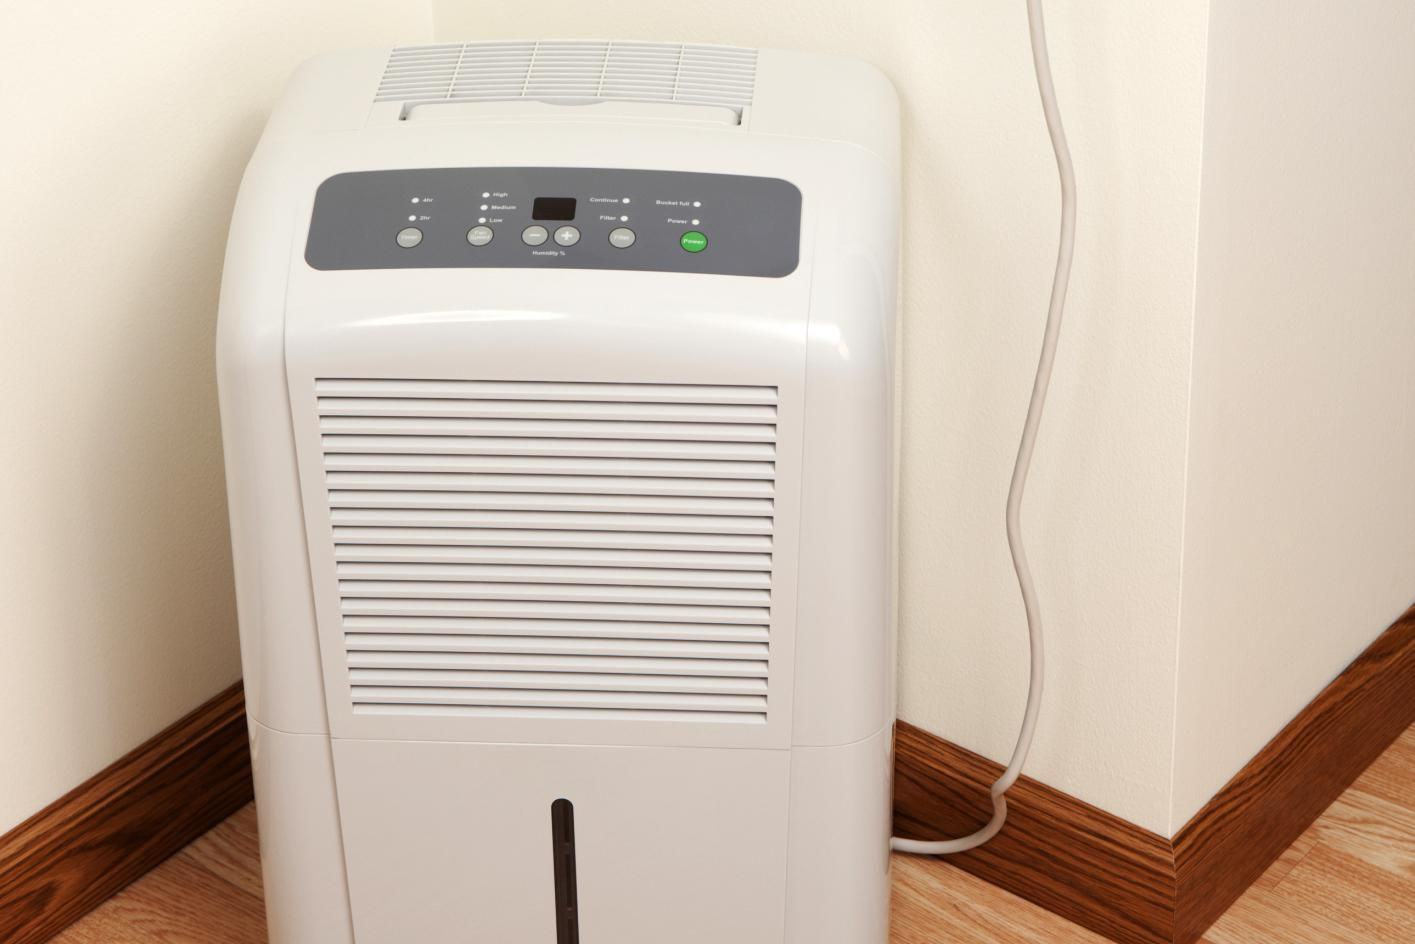 tips for choosing a dehumidifier 14524 | 184856939 copy 56a343f15f9b58b7d0d12c9f